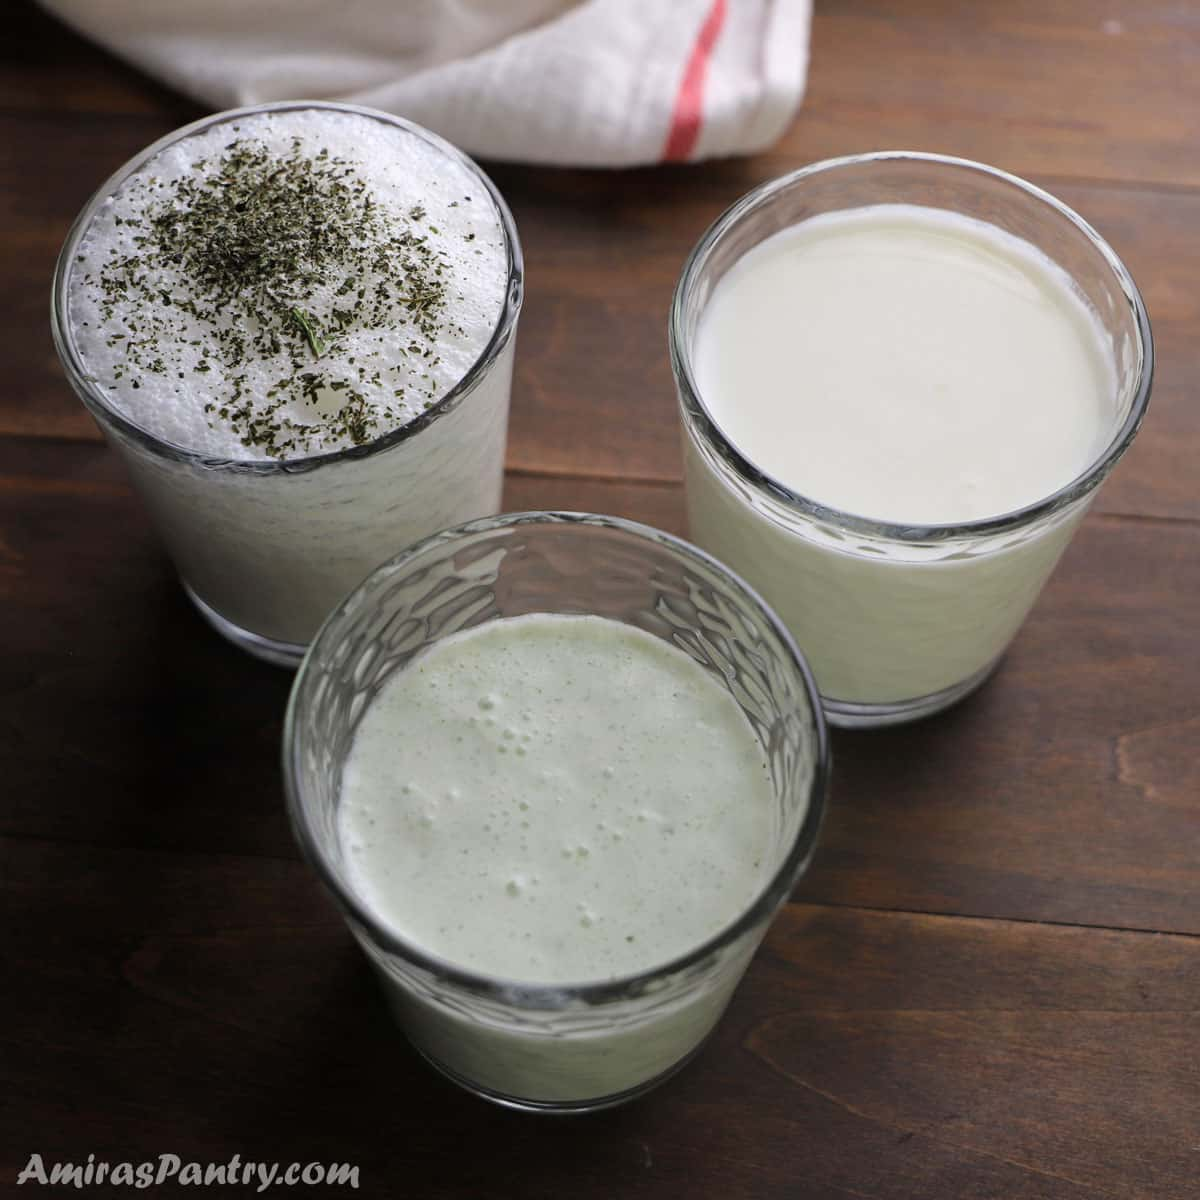 3 cups of different flavors of Ayran placed on a wooden surface.